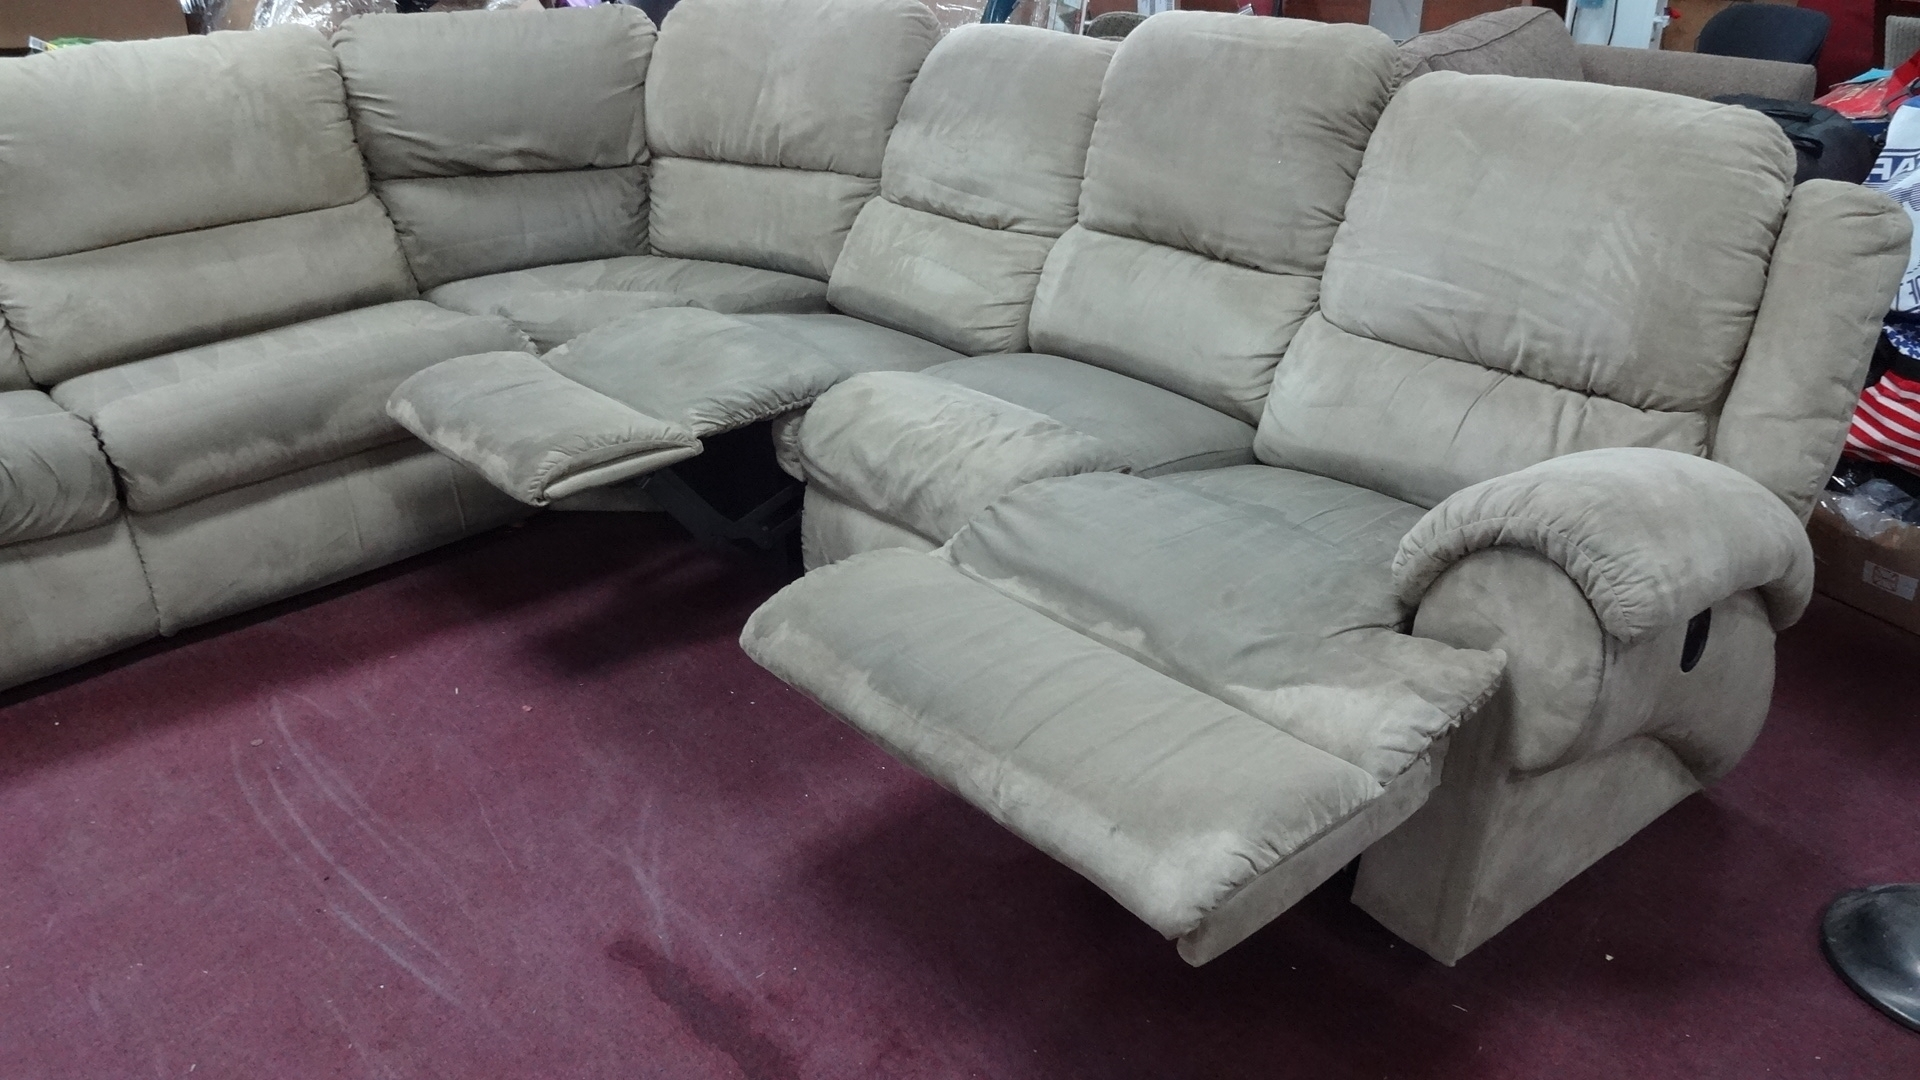 Trendy Sectional Sofas At Brick Intended For La Z Boy Sectional Sofa Bed • Sofa Bed (View 6 of 15)